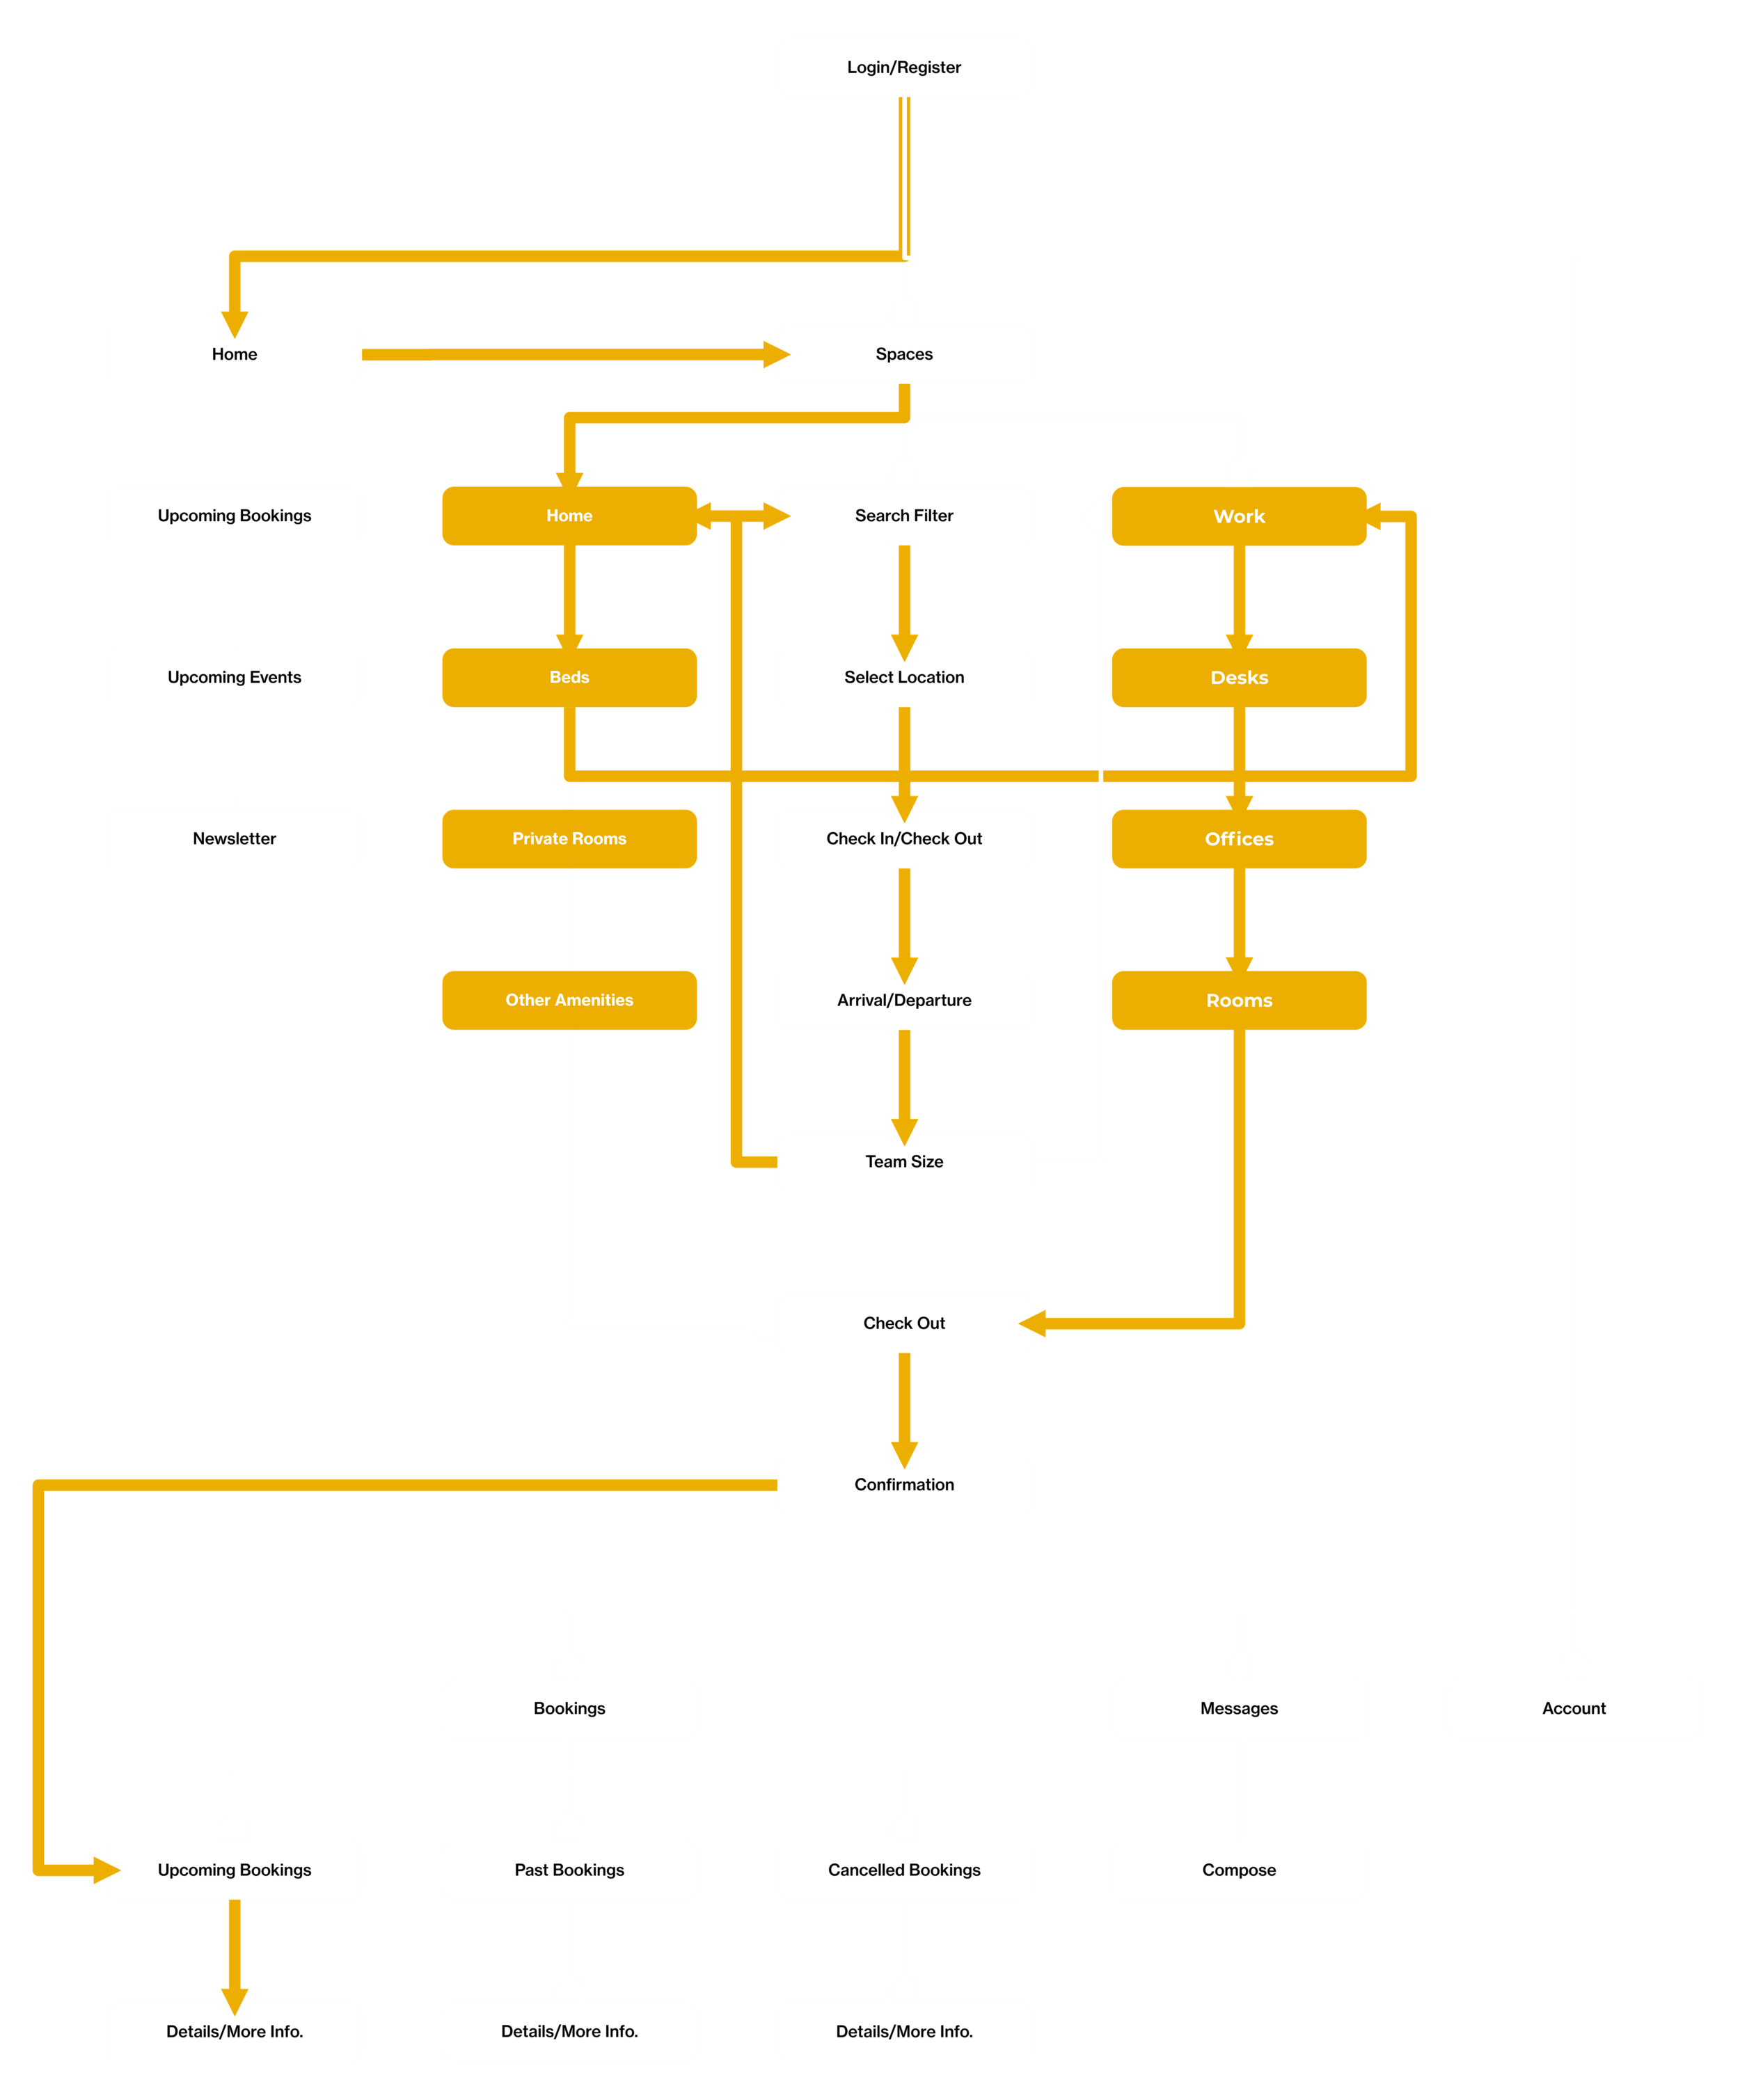 SiteMap05w.png